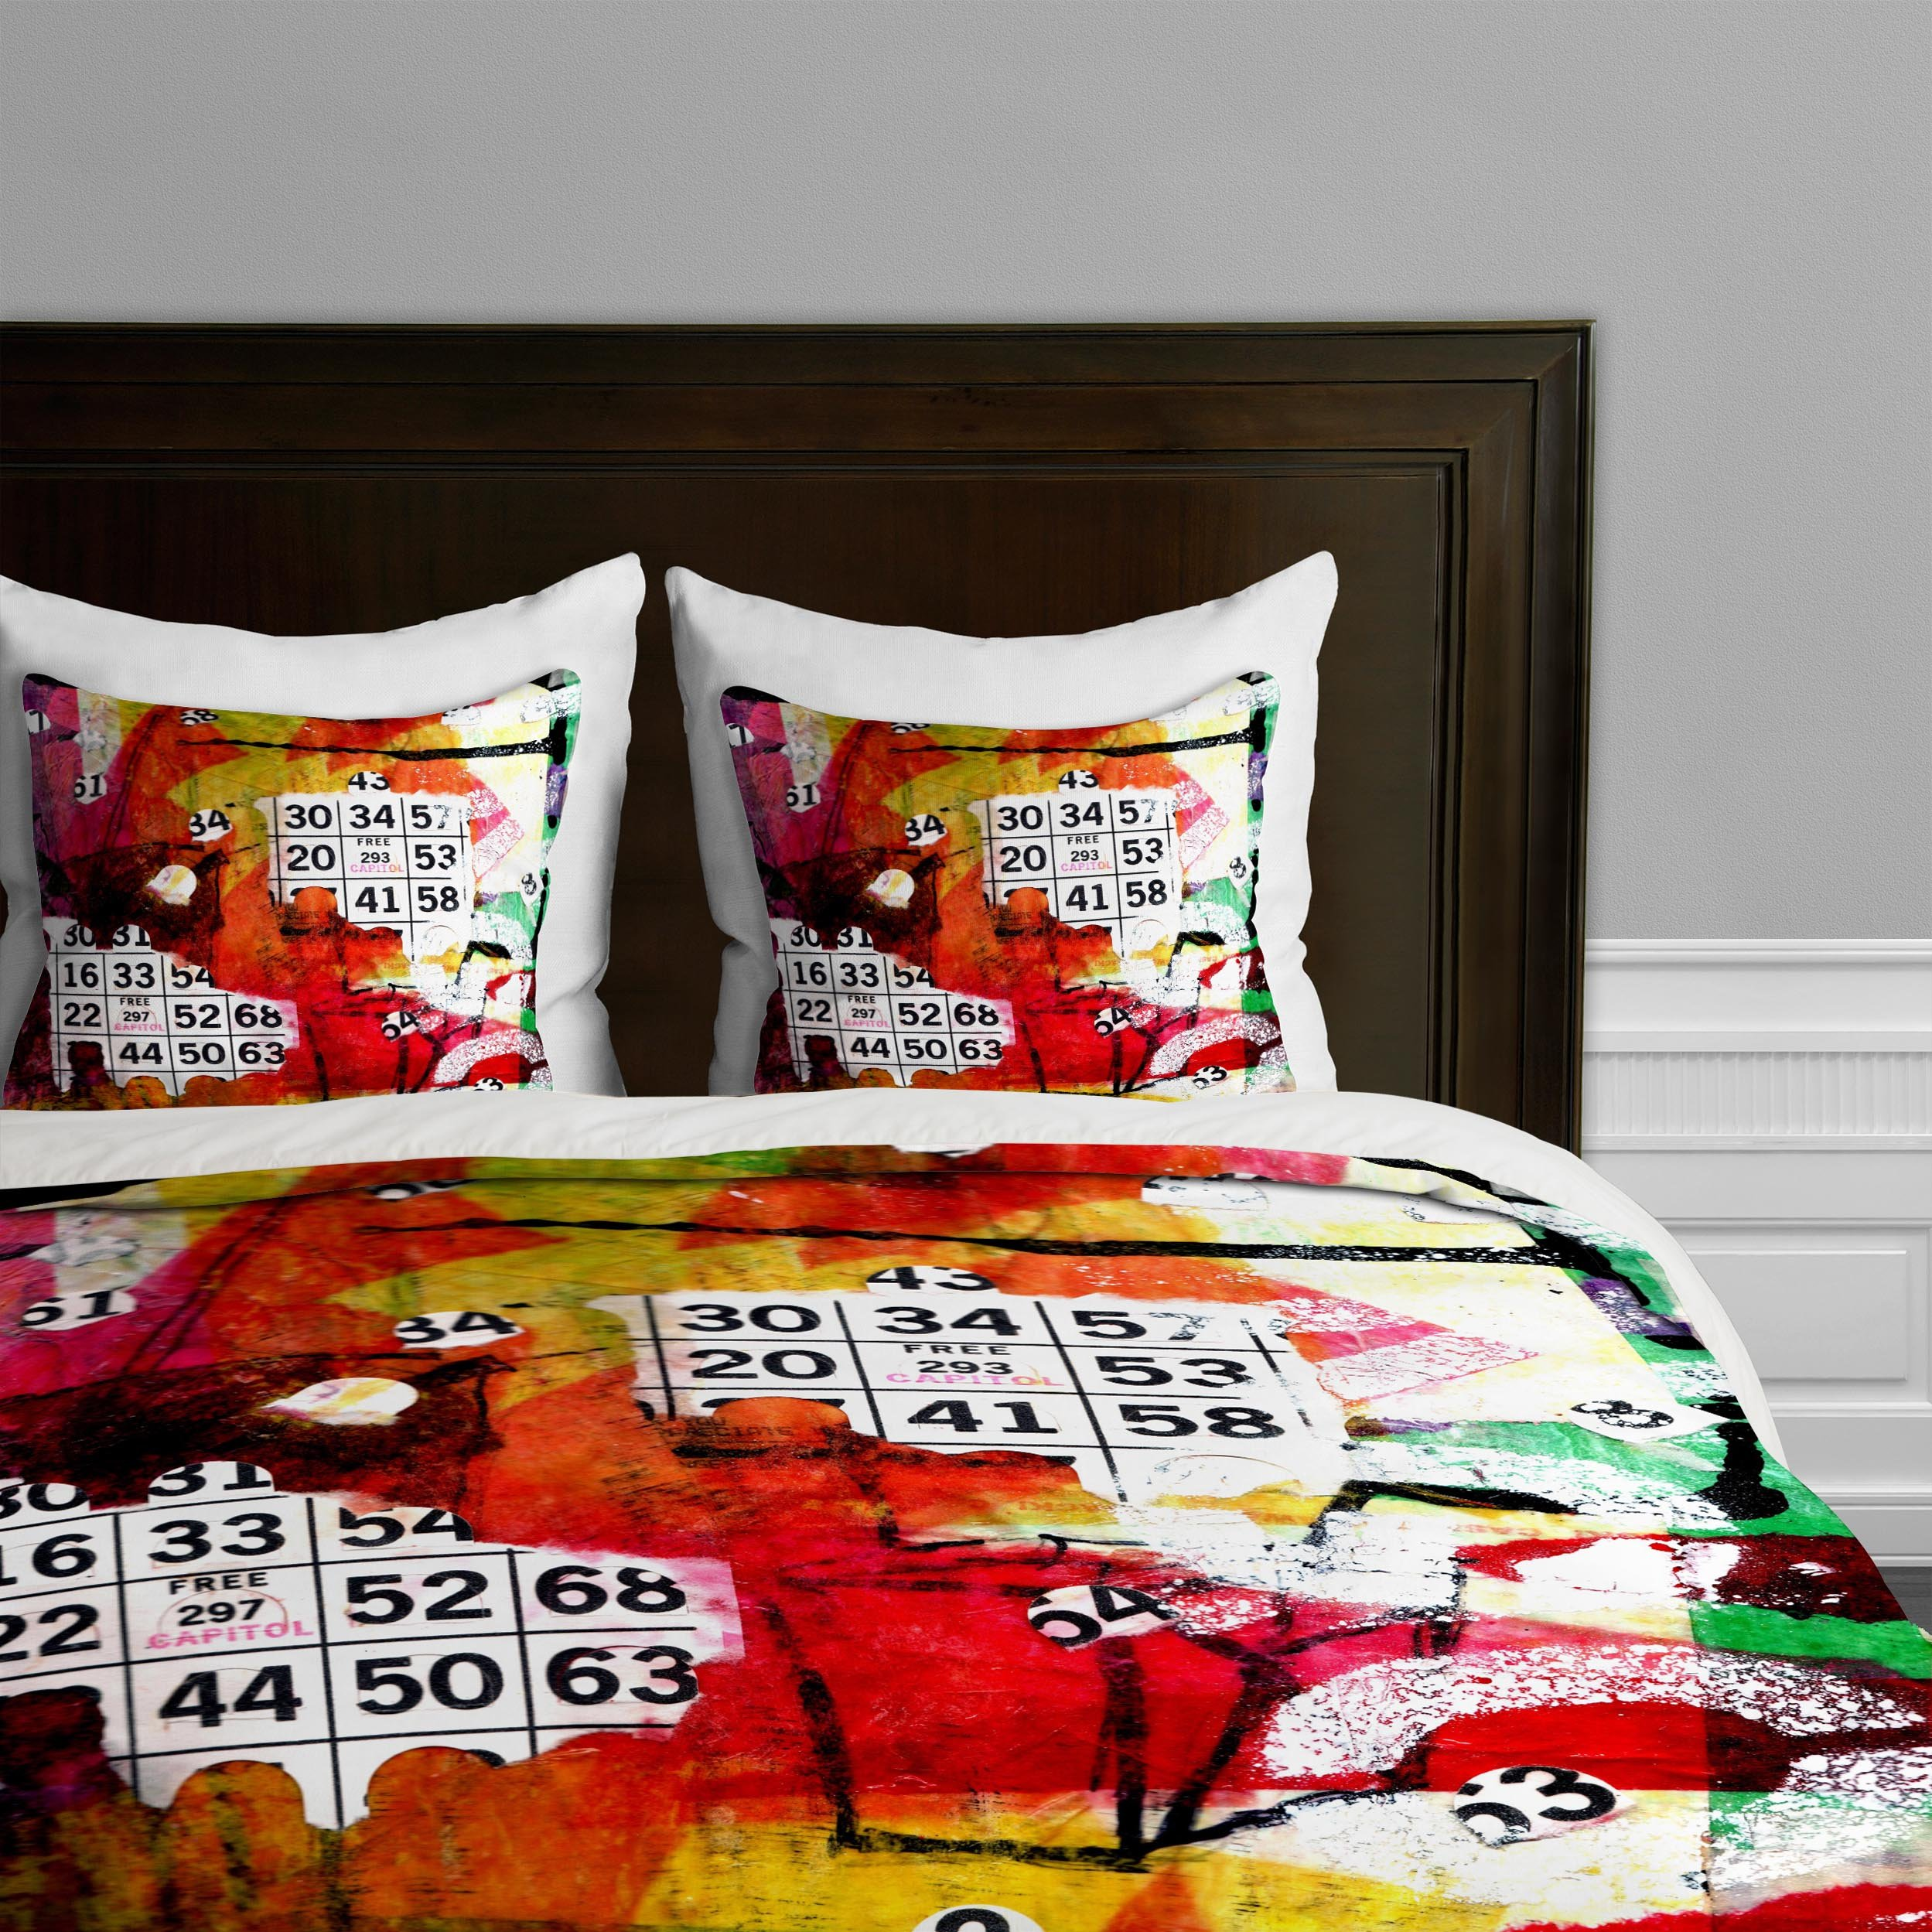 Deny Designs  Sophia Buddenhagen Bright Bingo 2 Duvet Cover, Twin/Twin XL by Deny Designs